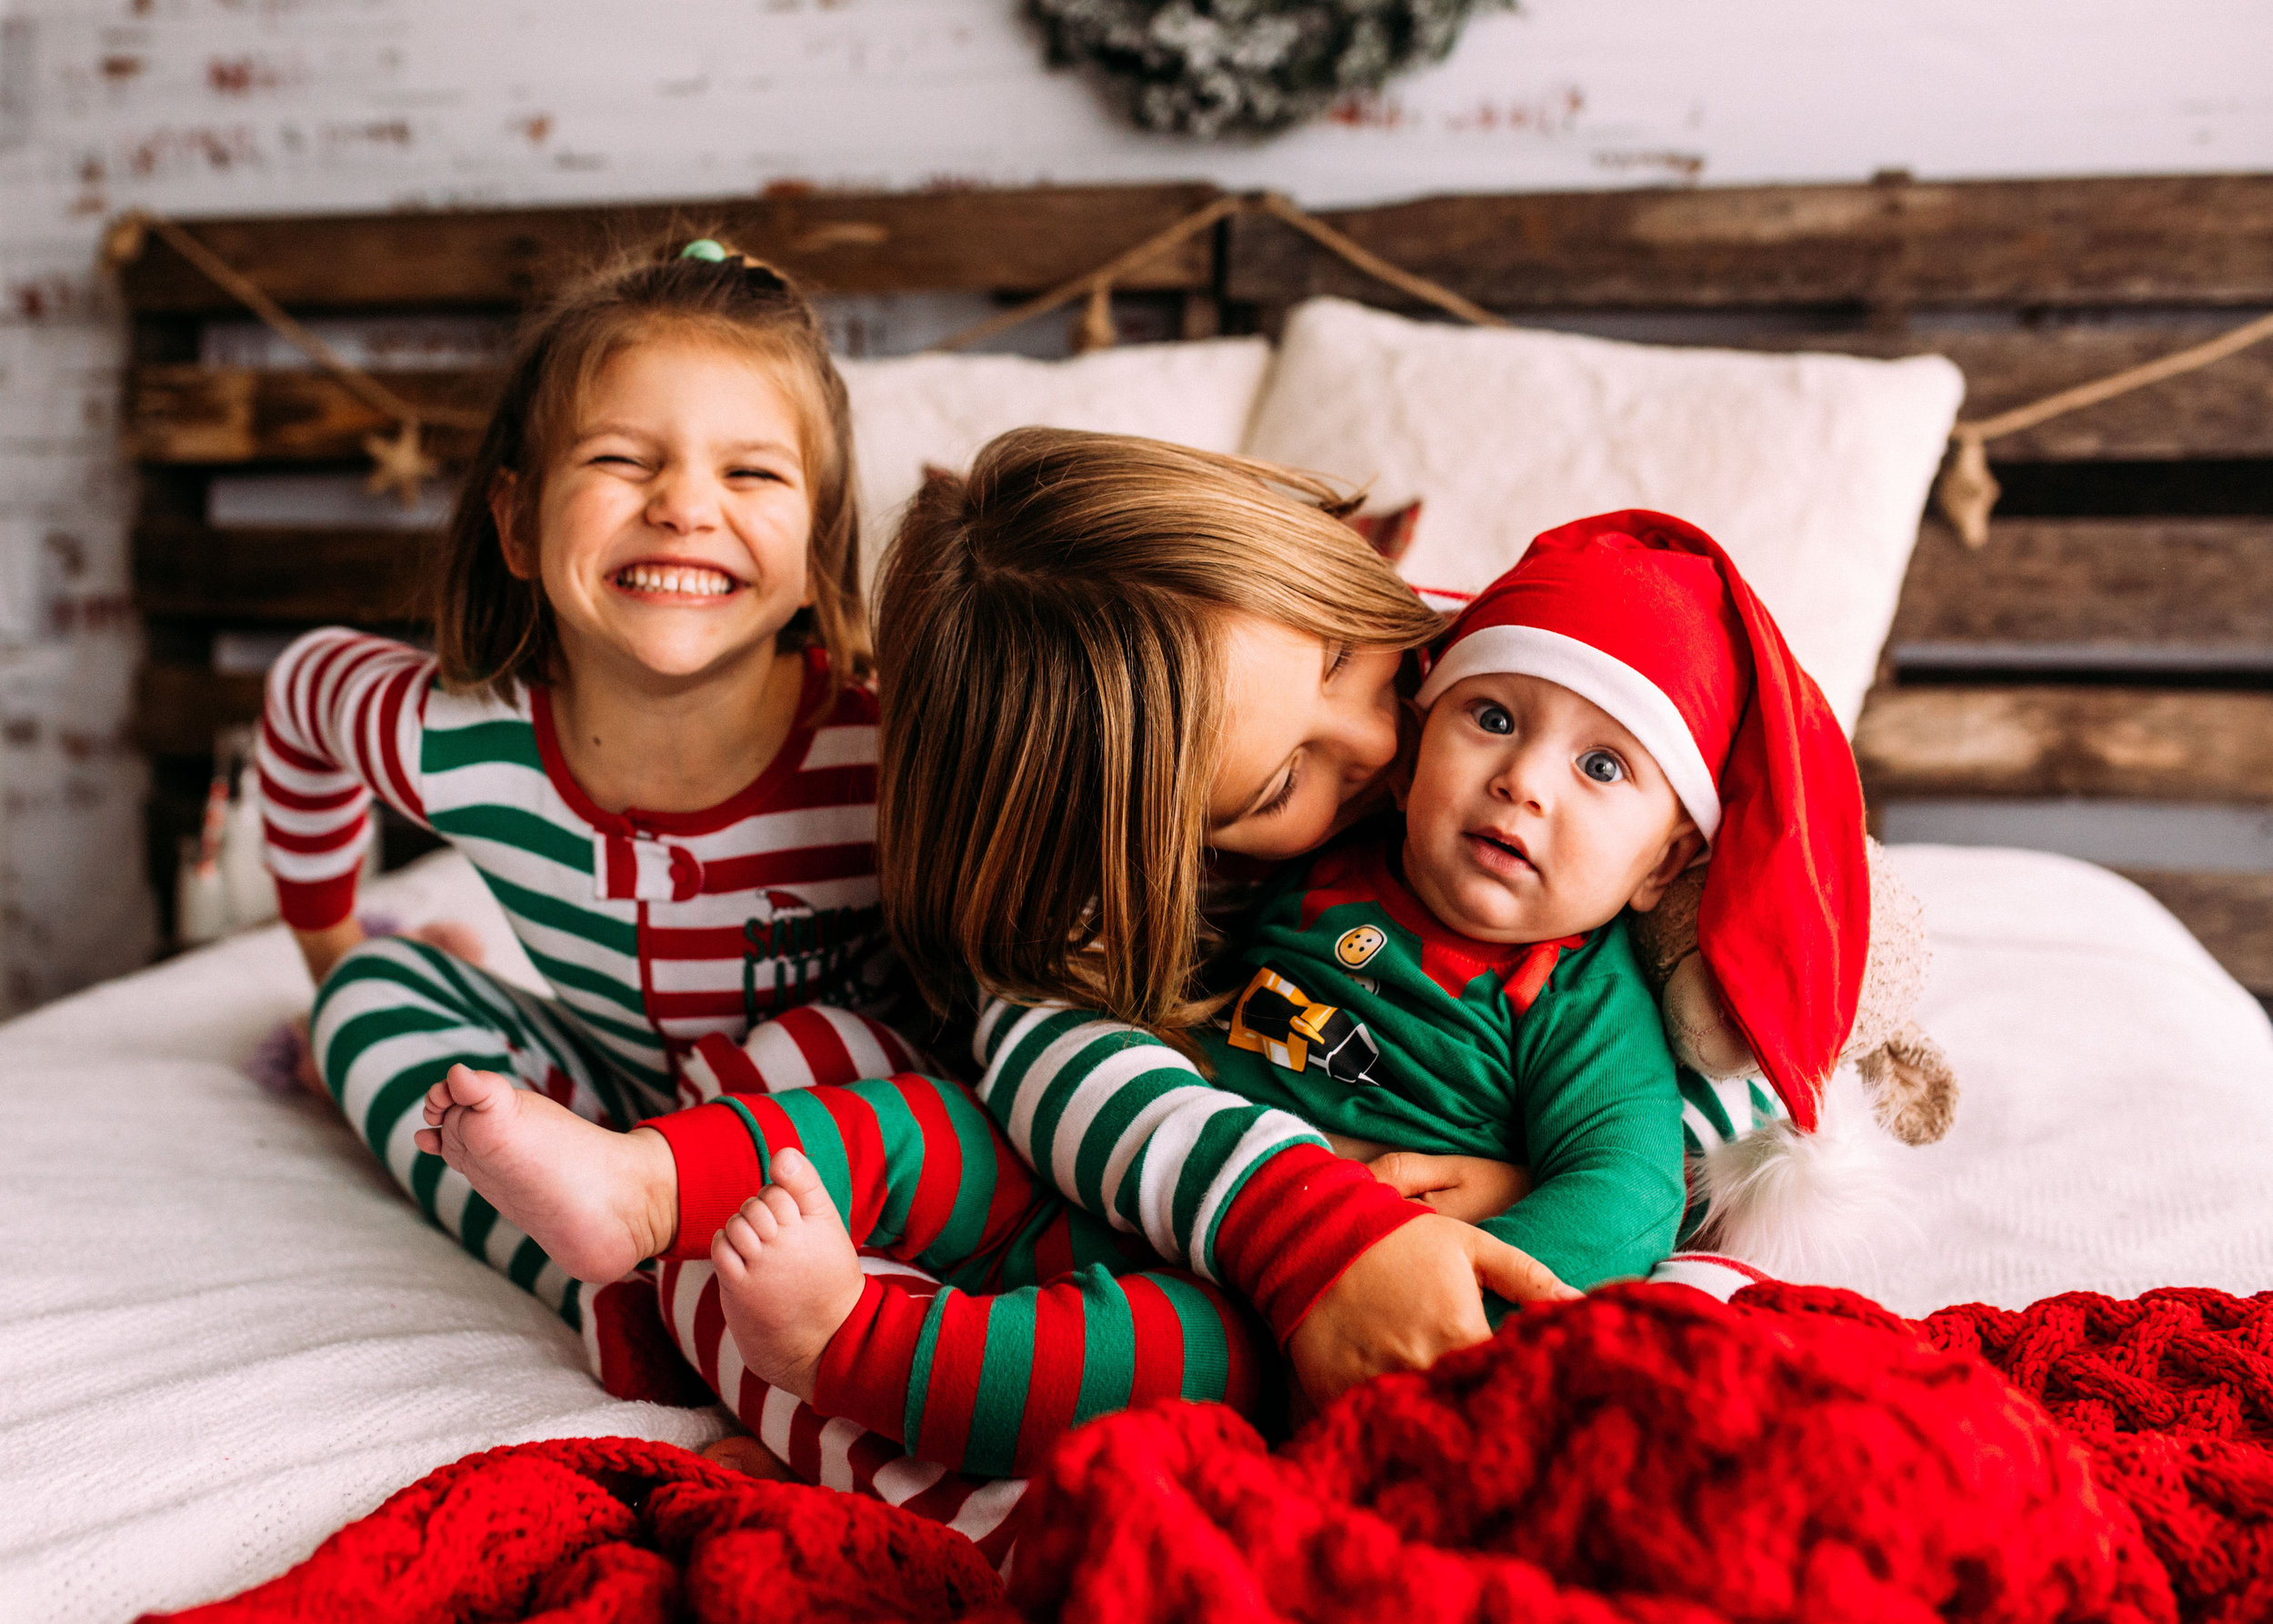 children in Christmas PJ's snuggling on bed